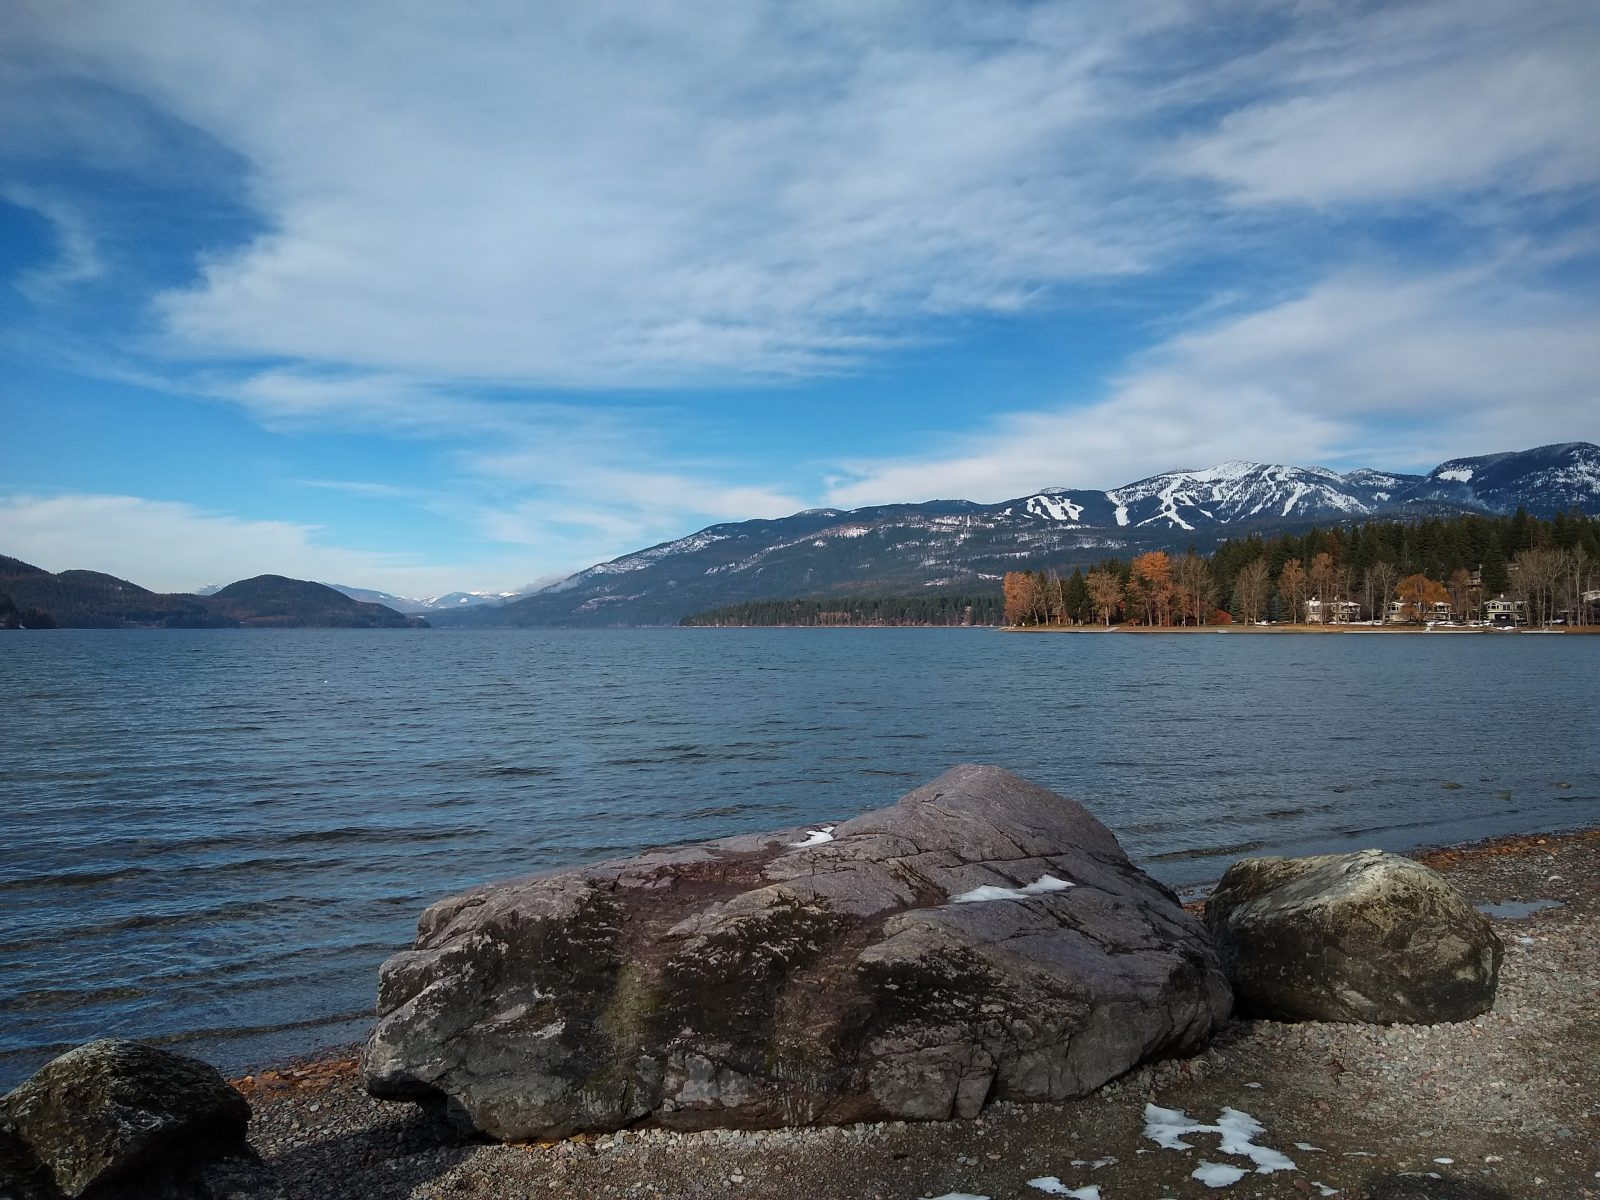 Whitefish Lake - November 17, 2020